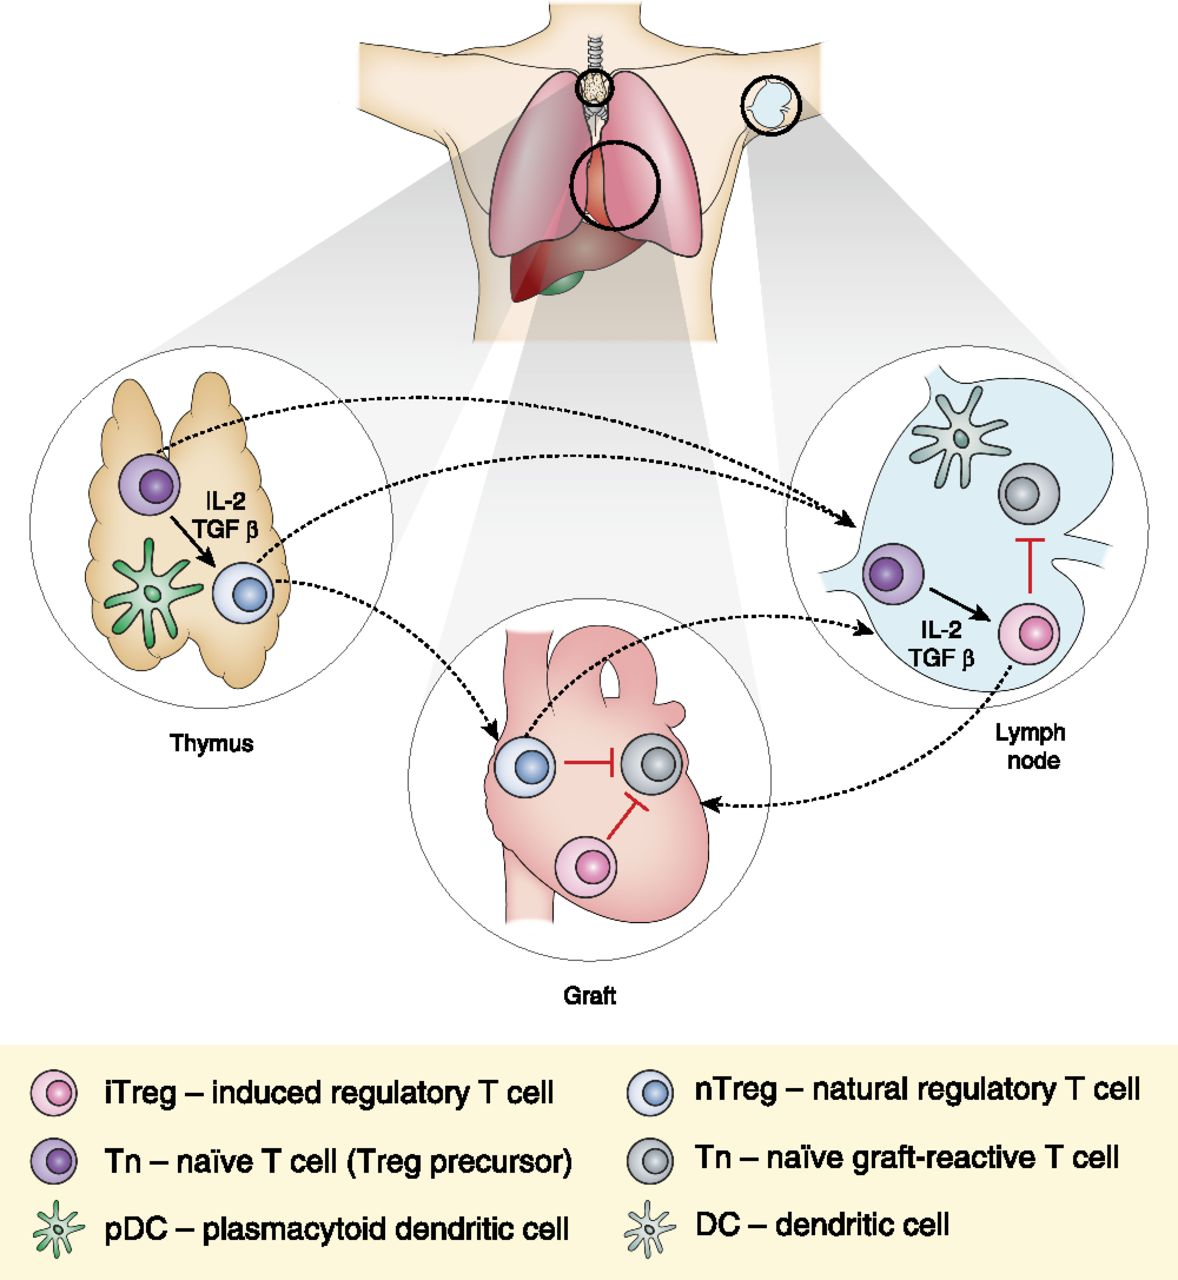 T lymphocytes mature in the